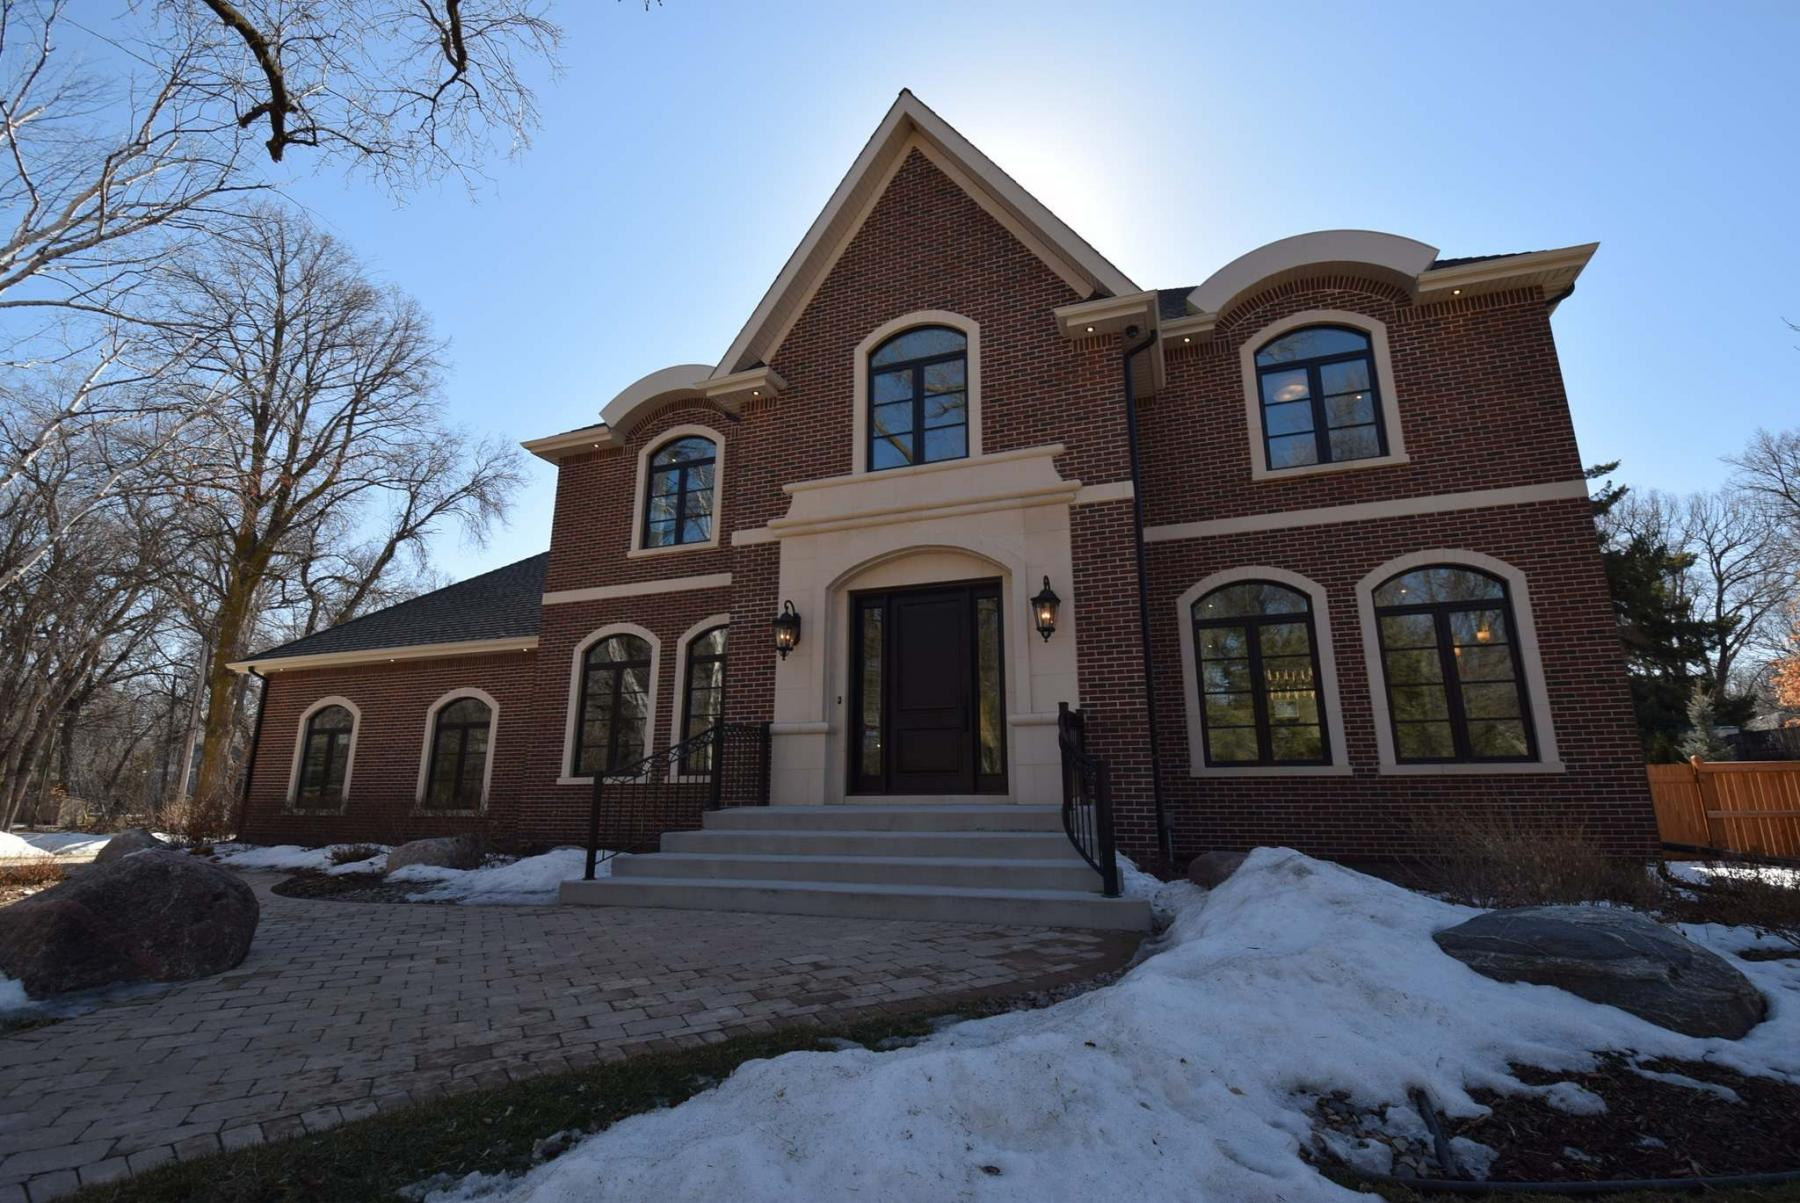 <p>Photos by Todd Lewys / Winnipeg Free Press</p><p>An exterior clad with red brick and earthy limestone give this two-storey masterpiece a rich, timeless look.</p>